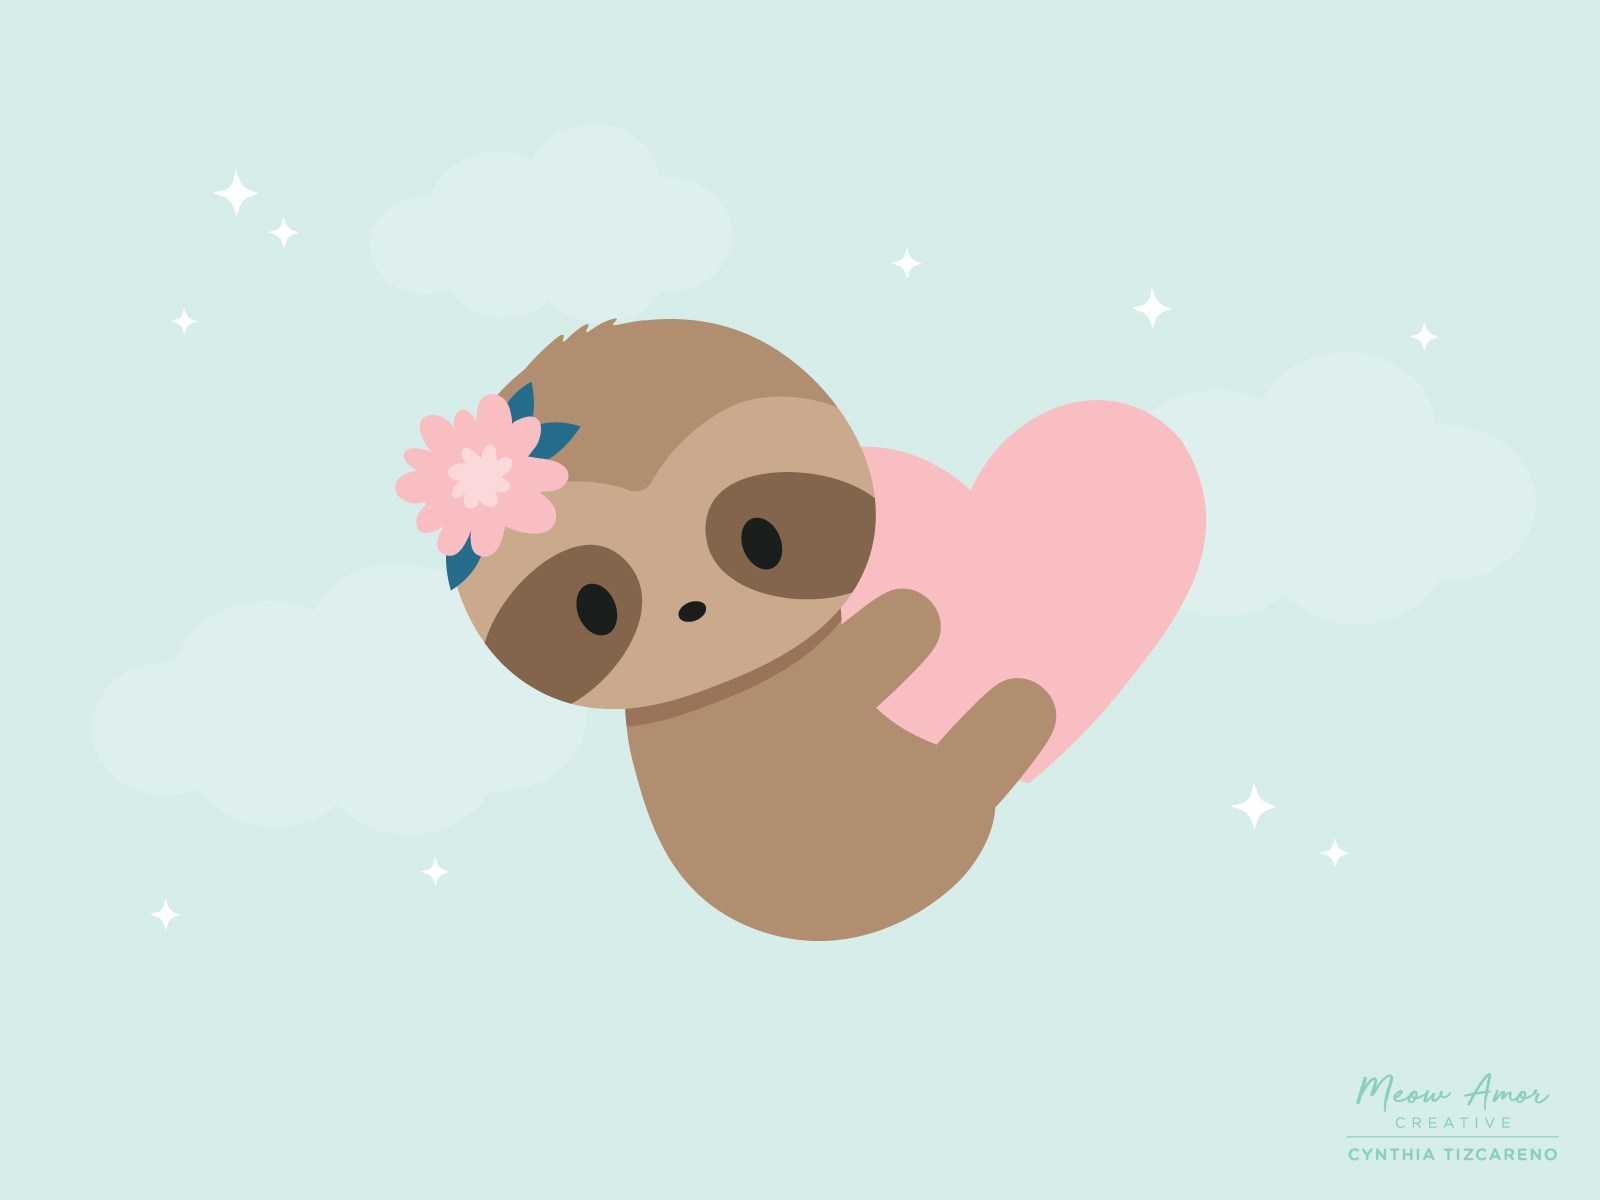 Sloth Baby By Cynthia Tizcareno On Dribbble